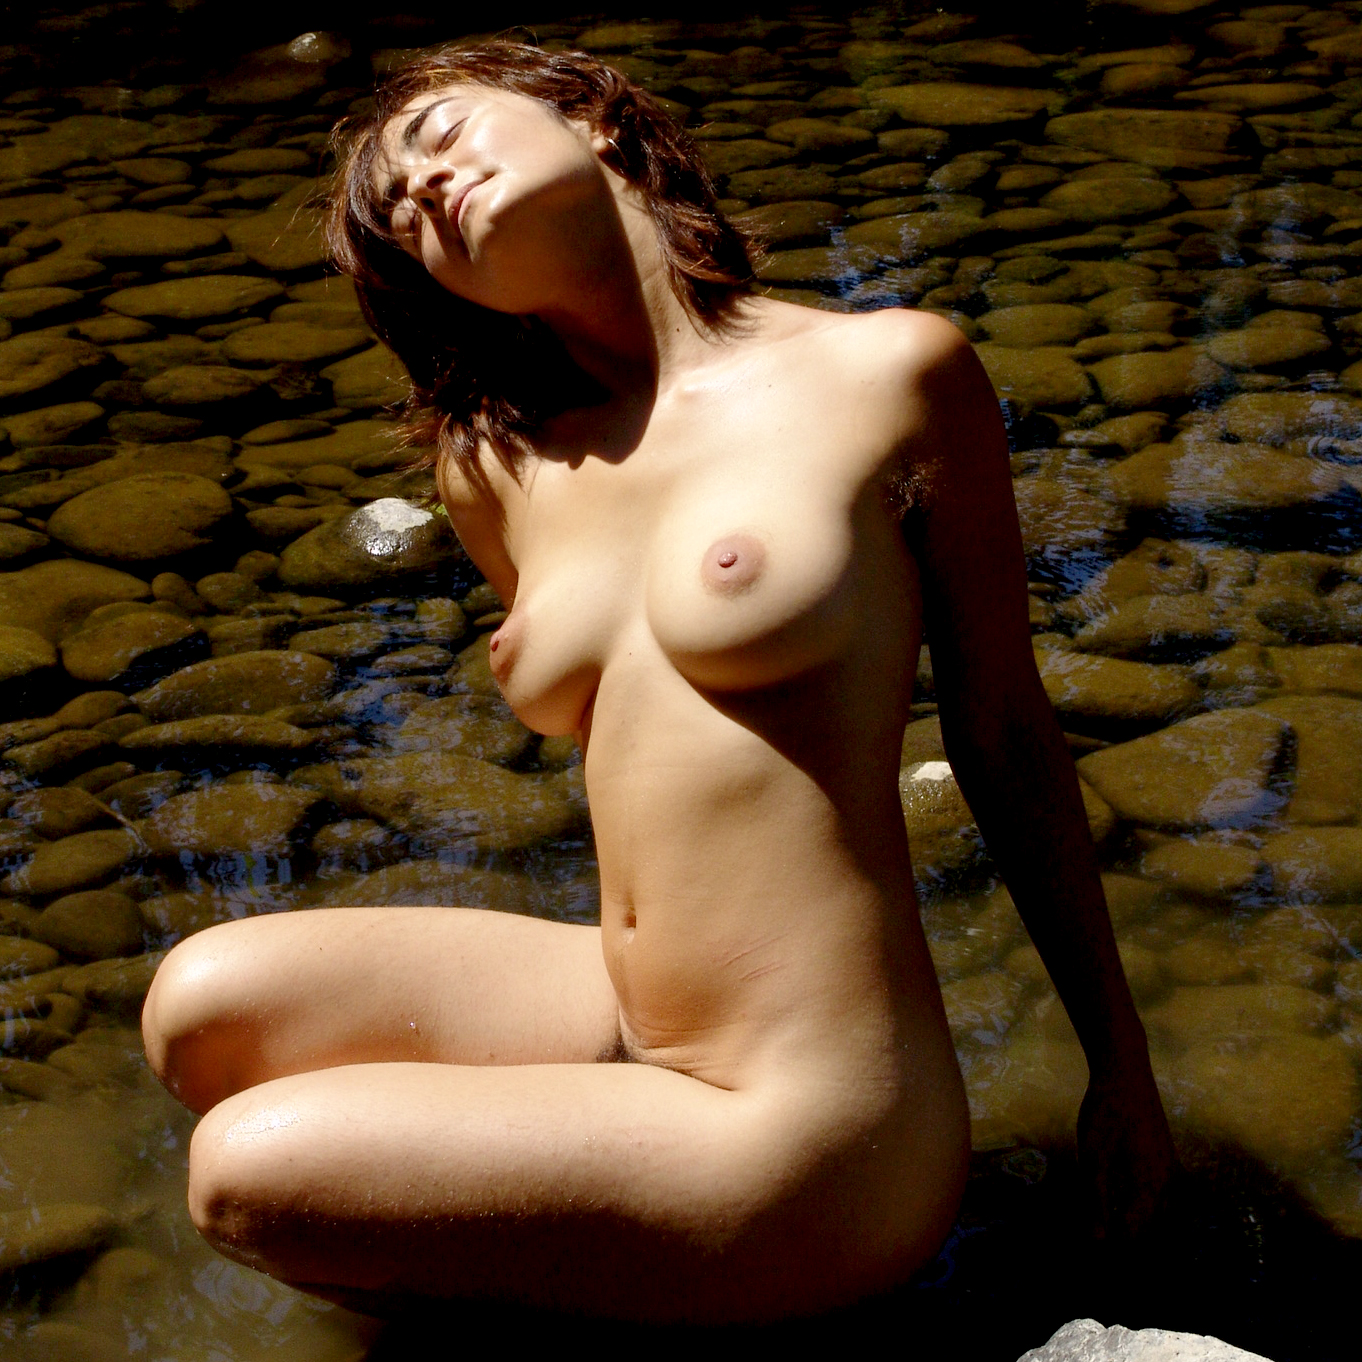 Nude on the water final, sorry